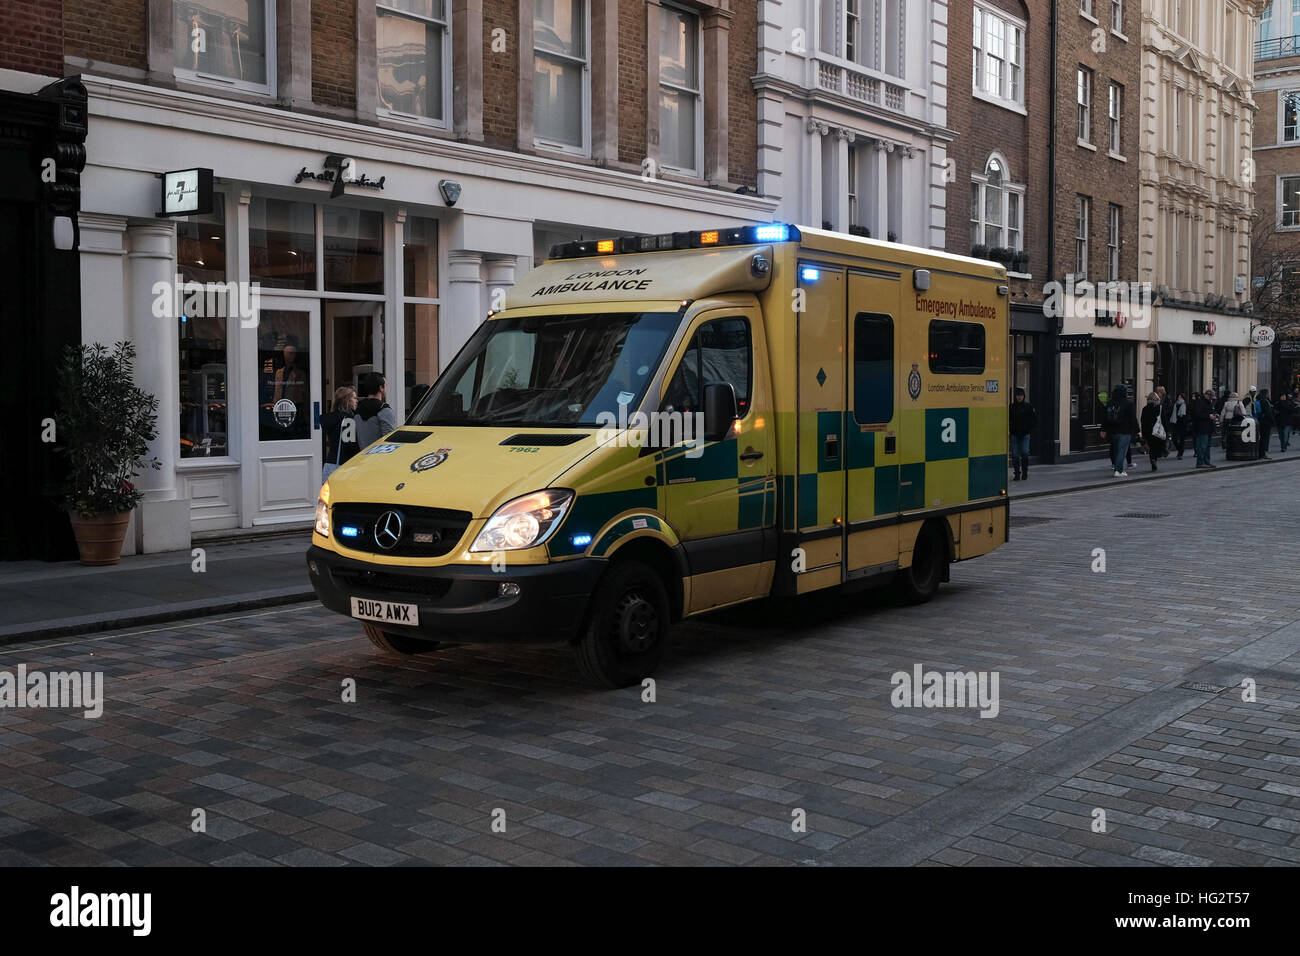 London Ambulance attending an emergency call out in Covent